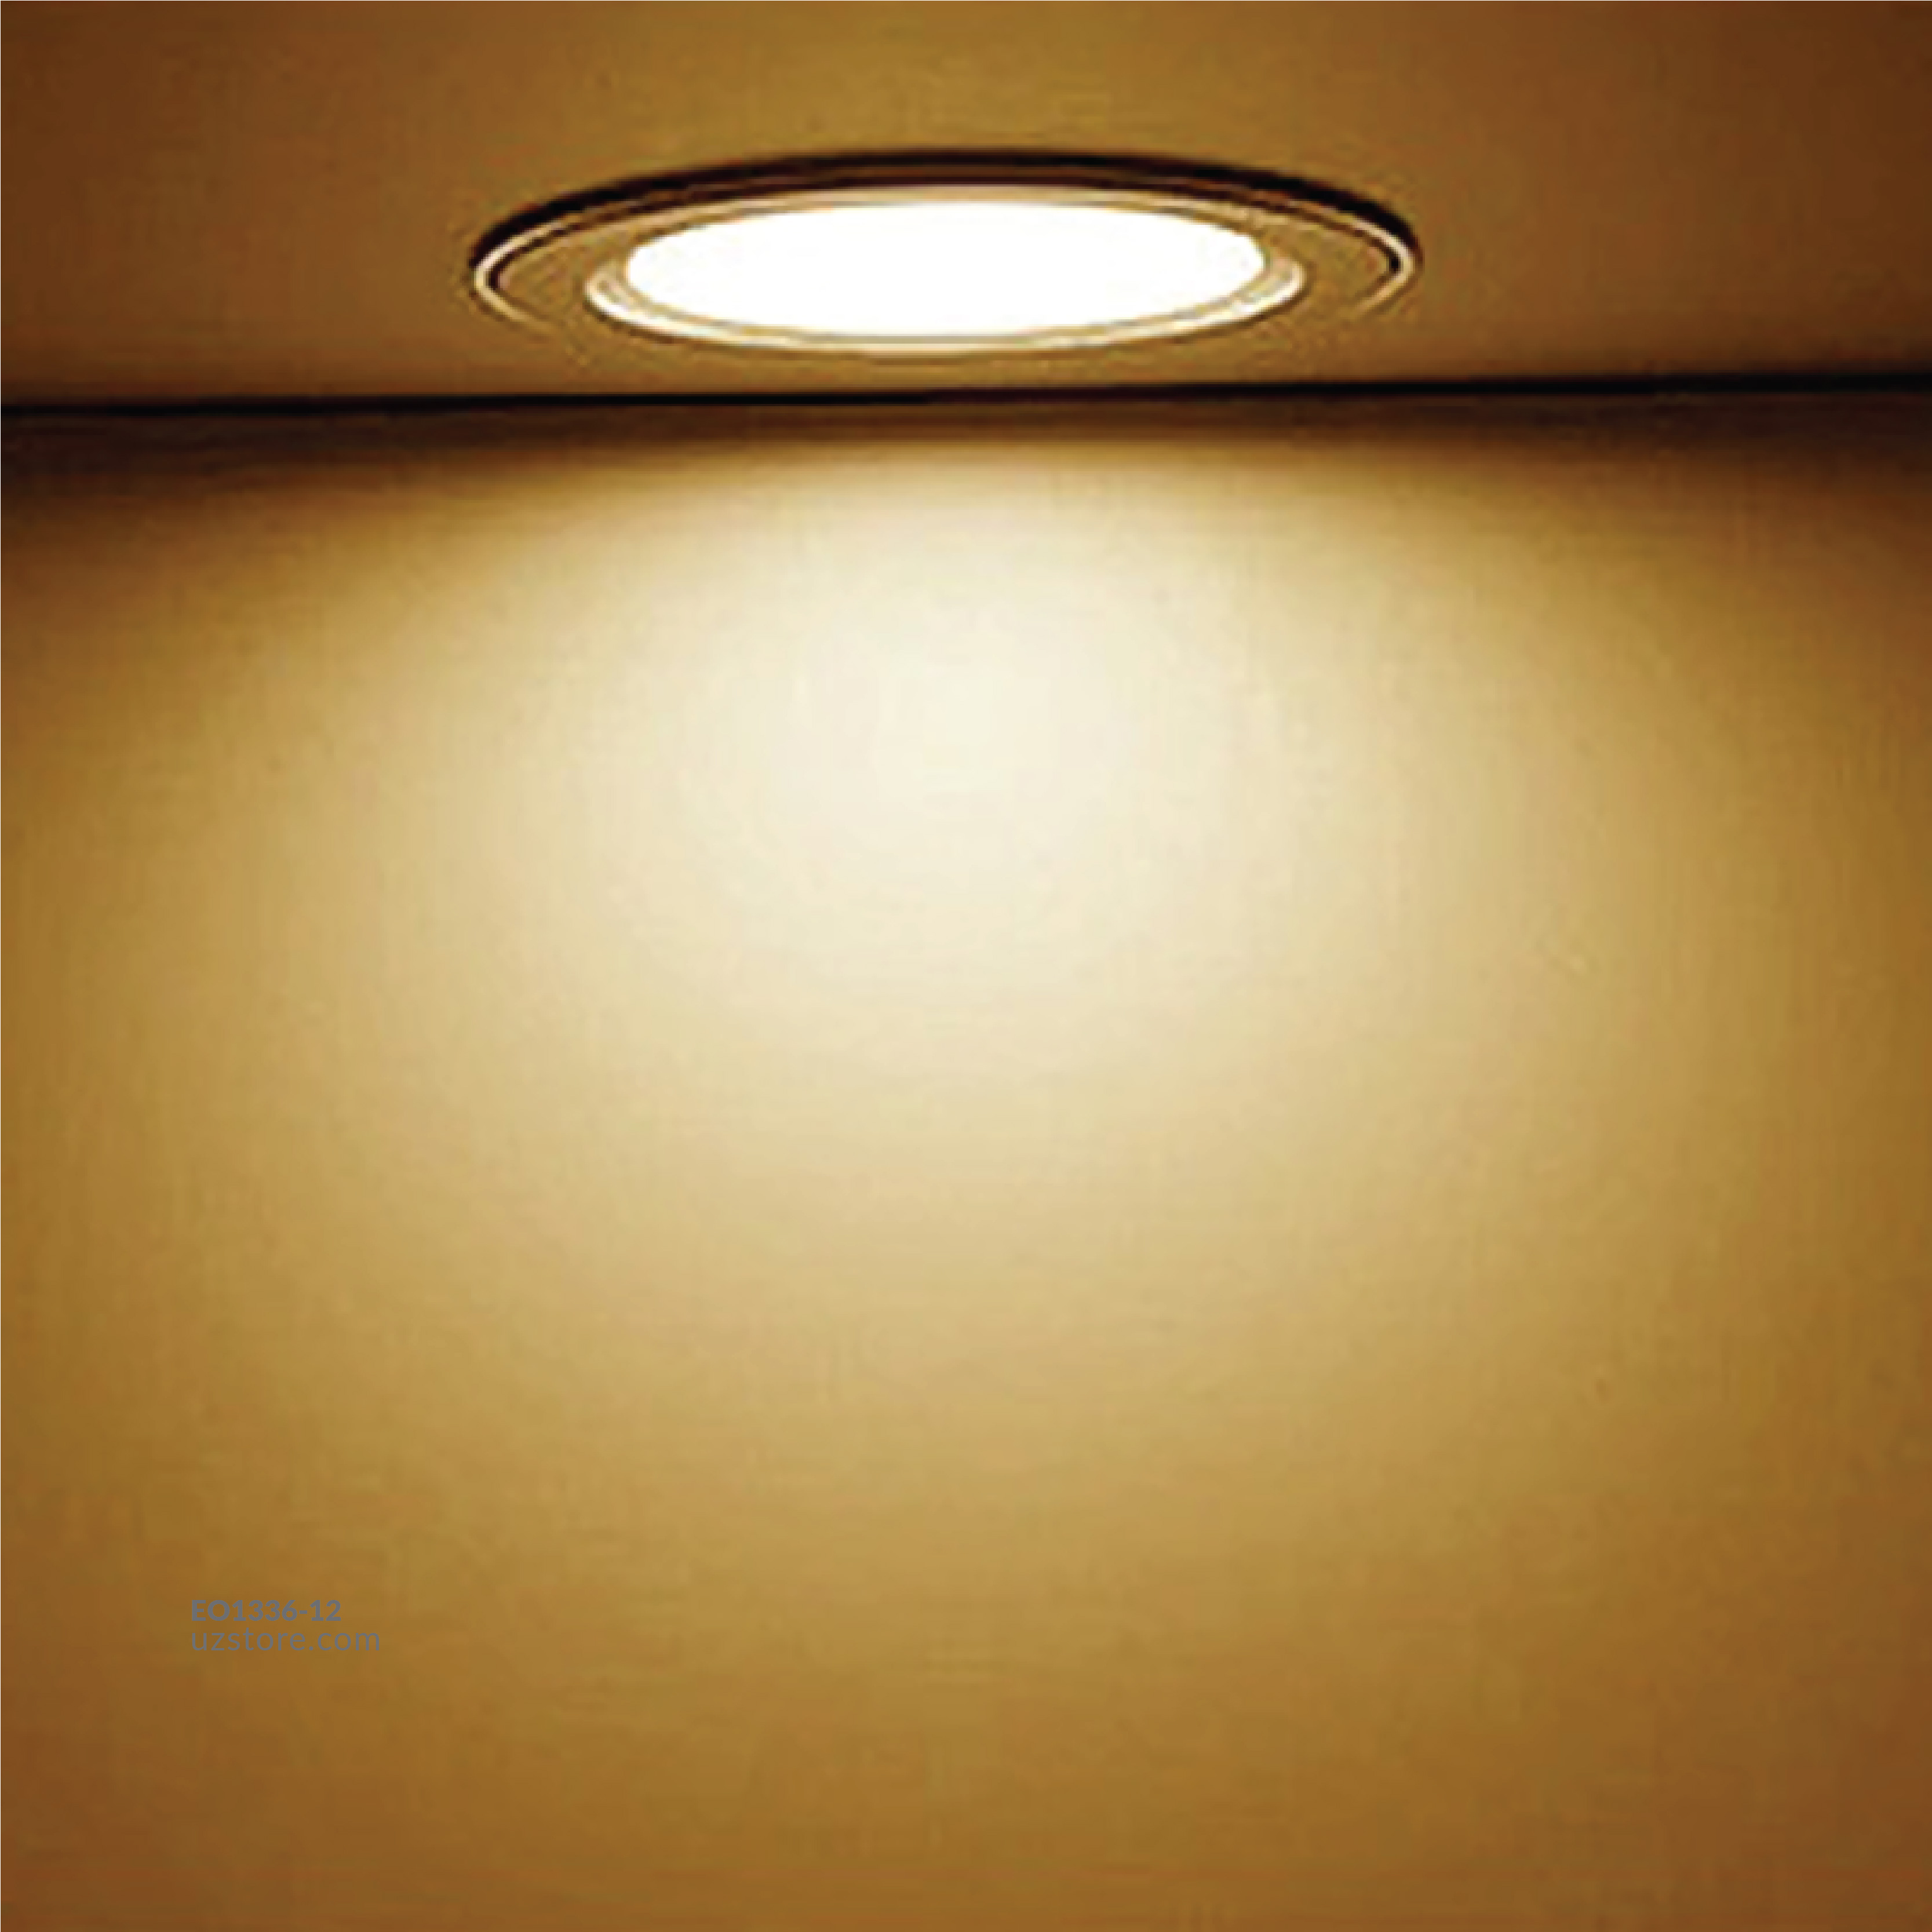 OMEX - RD Slim panle Light Led 12w WW